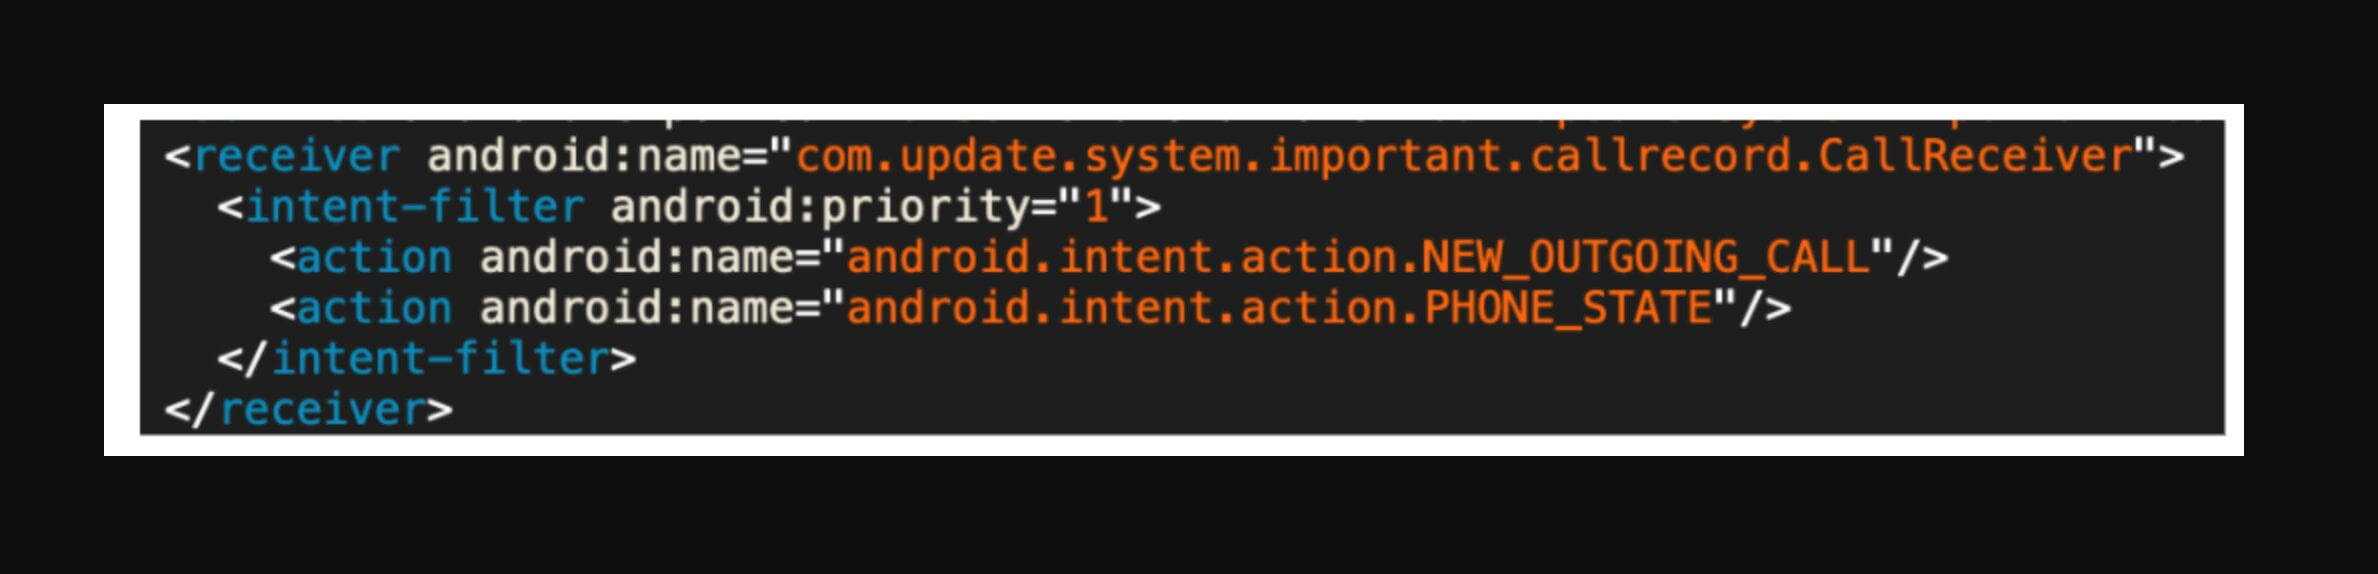 new-advanced-android-malware-system-update